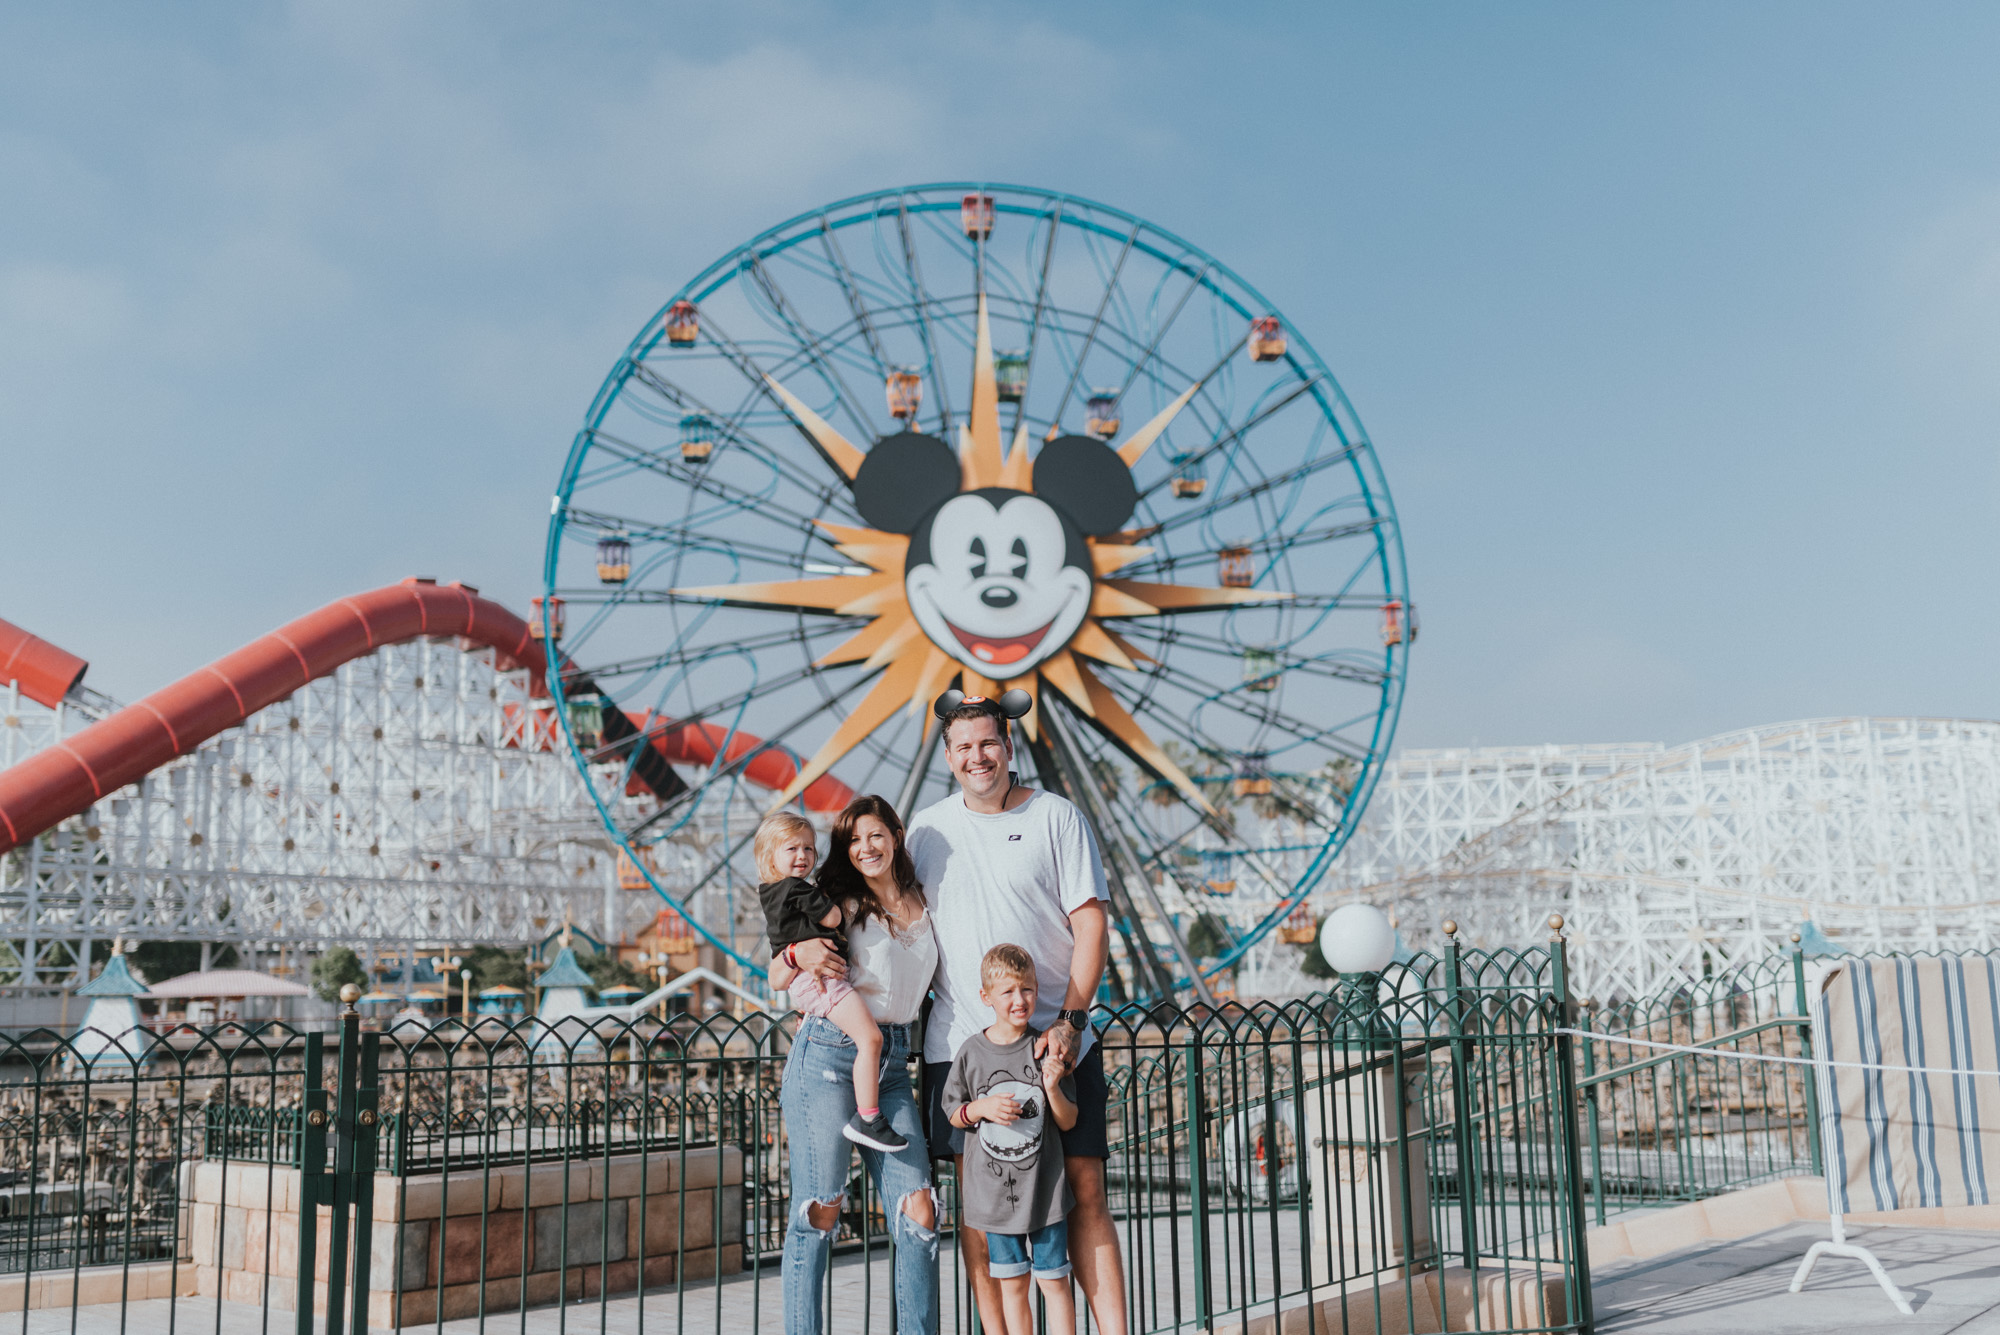 10 Things To know When Travelling To DisneyLand with Young Kids | Pixar Pier and Ferris Wheel